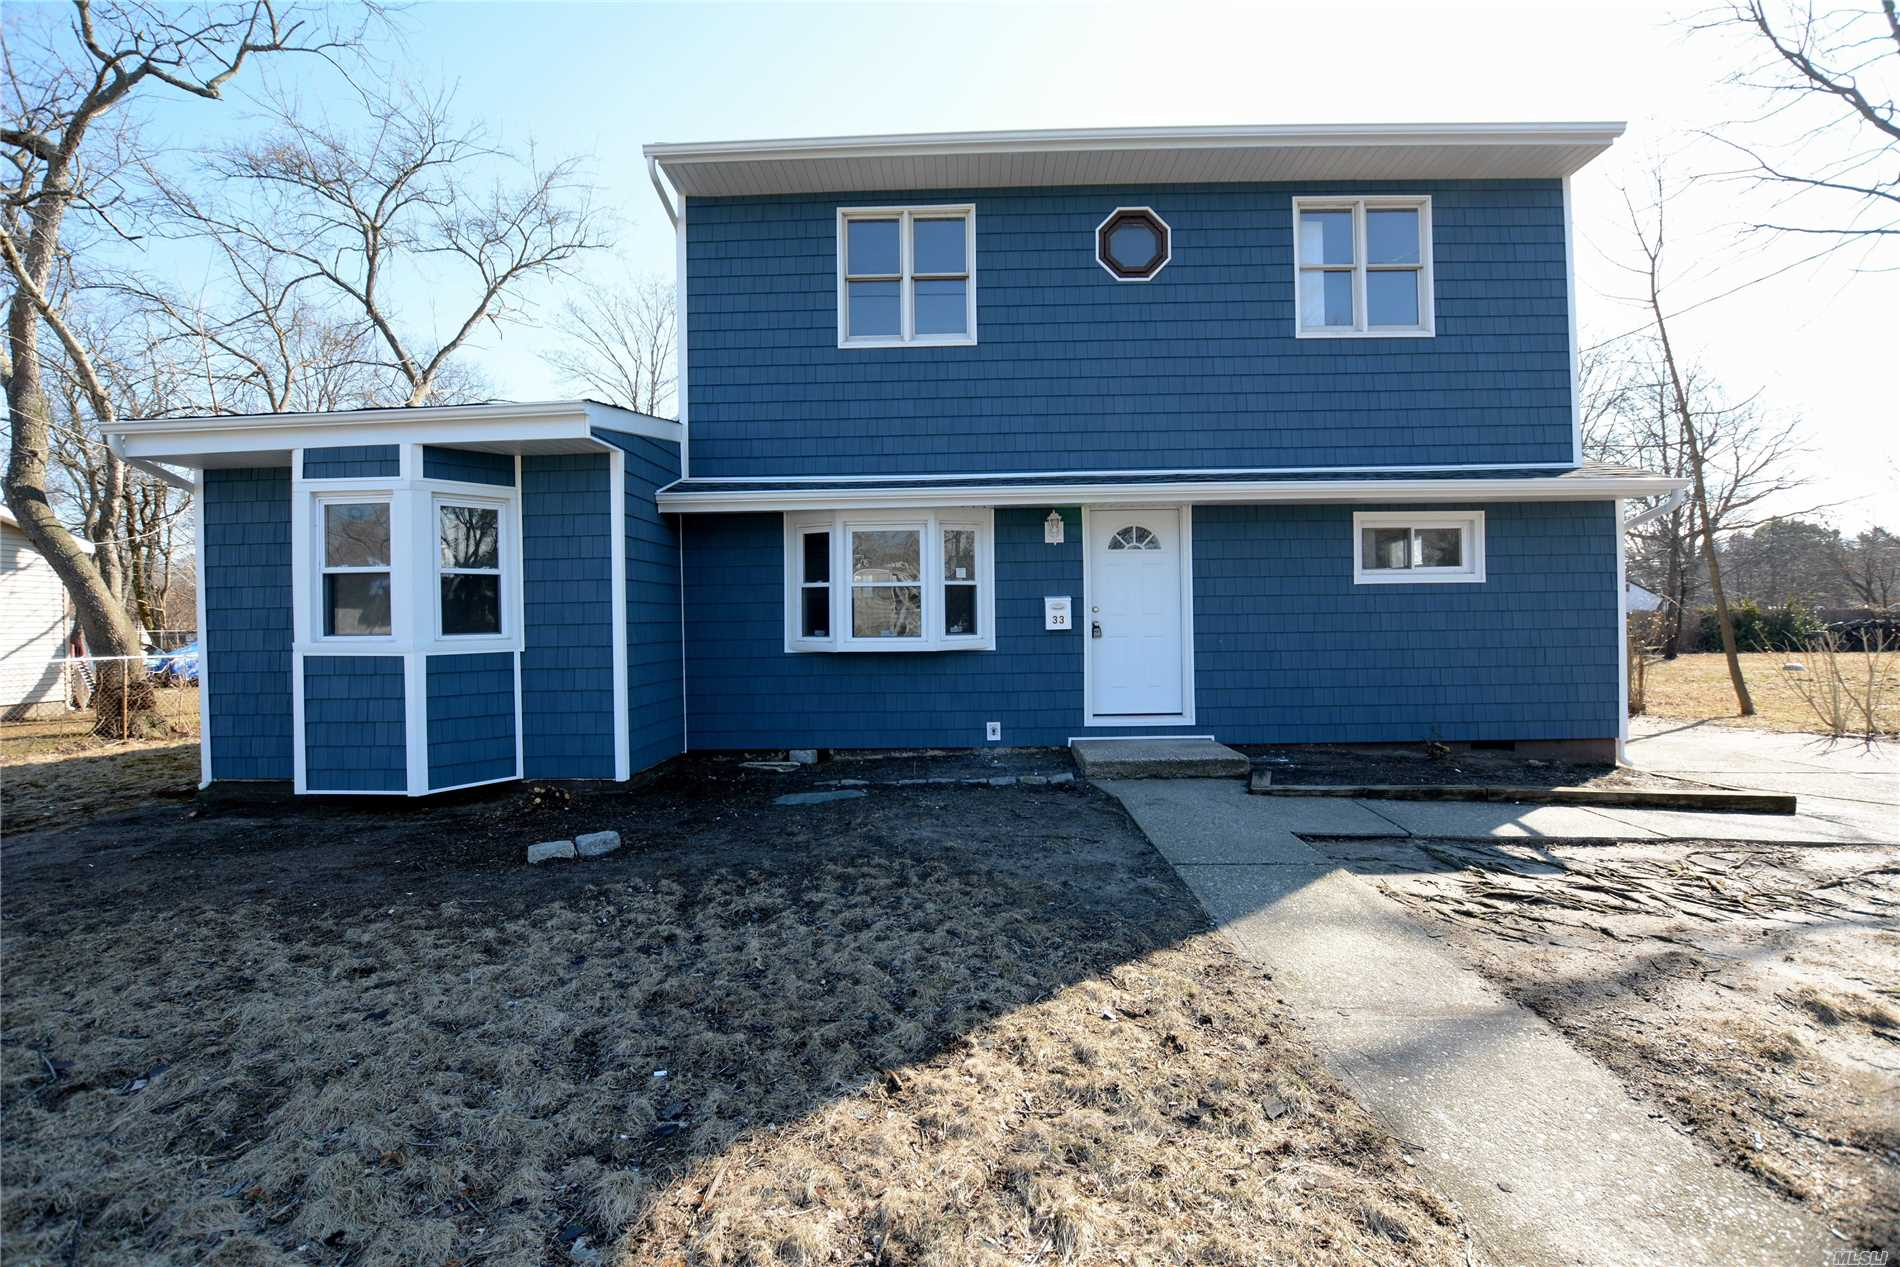 Move In Ready! Attention To Detail, Situated On A Quiet Residential Block. Large Spacious Home In Immaculate Condition, New Roof, New Siding, New Cesspools, New 200 Amp Service, New Ss Kit, 2 New Baths, New Wood Floors. Ceramic Tile In Entry Way Kit And Mud Room.